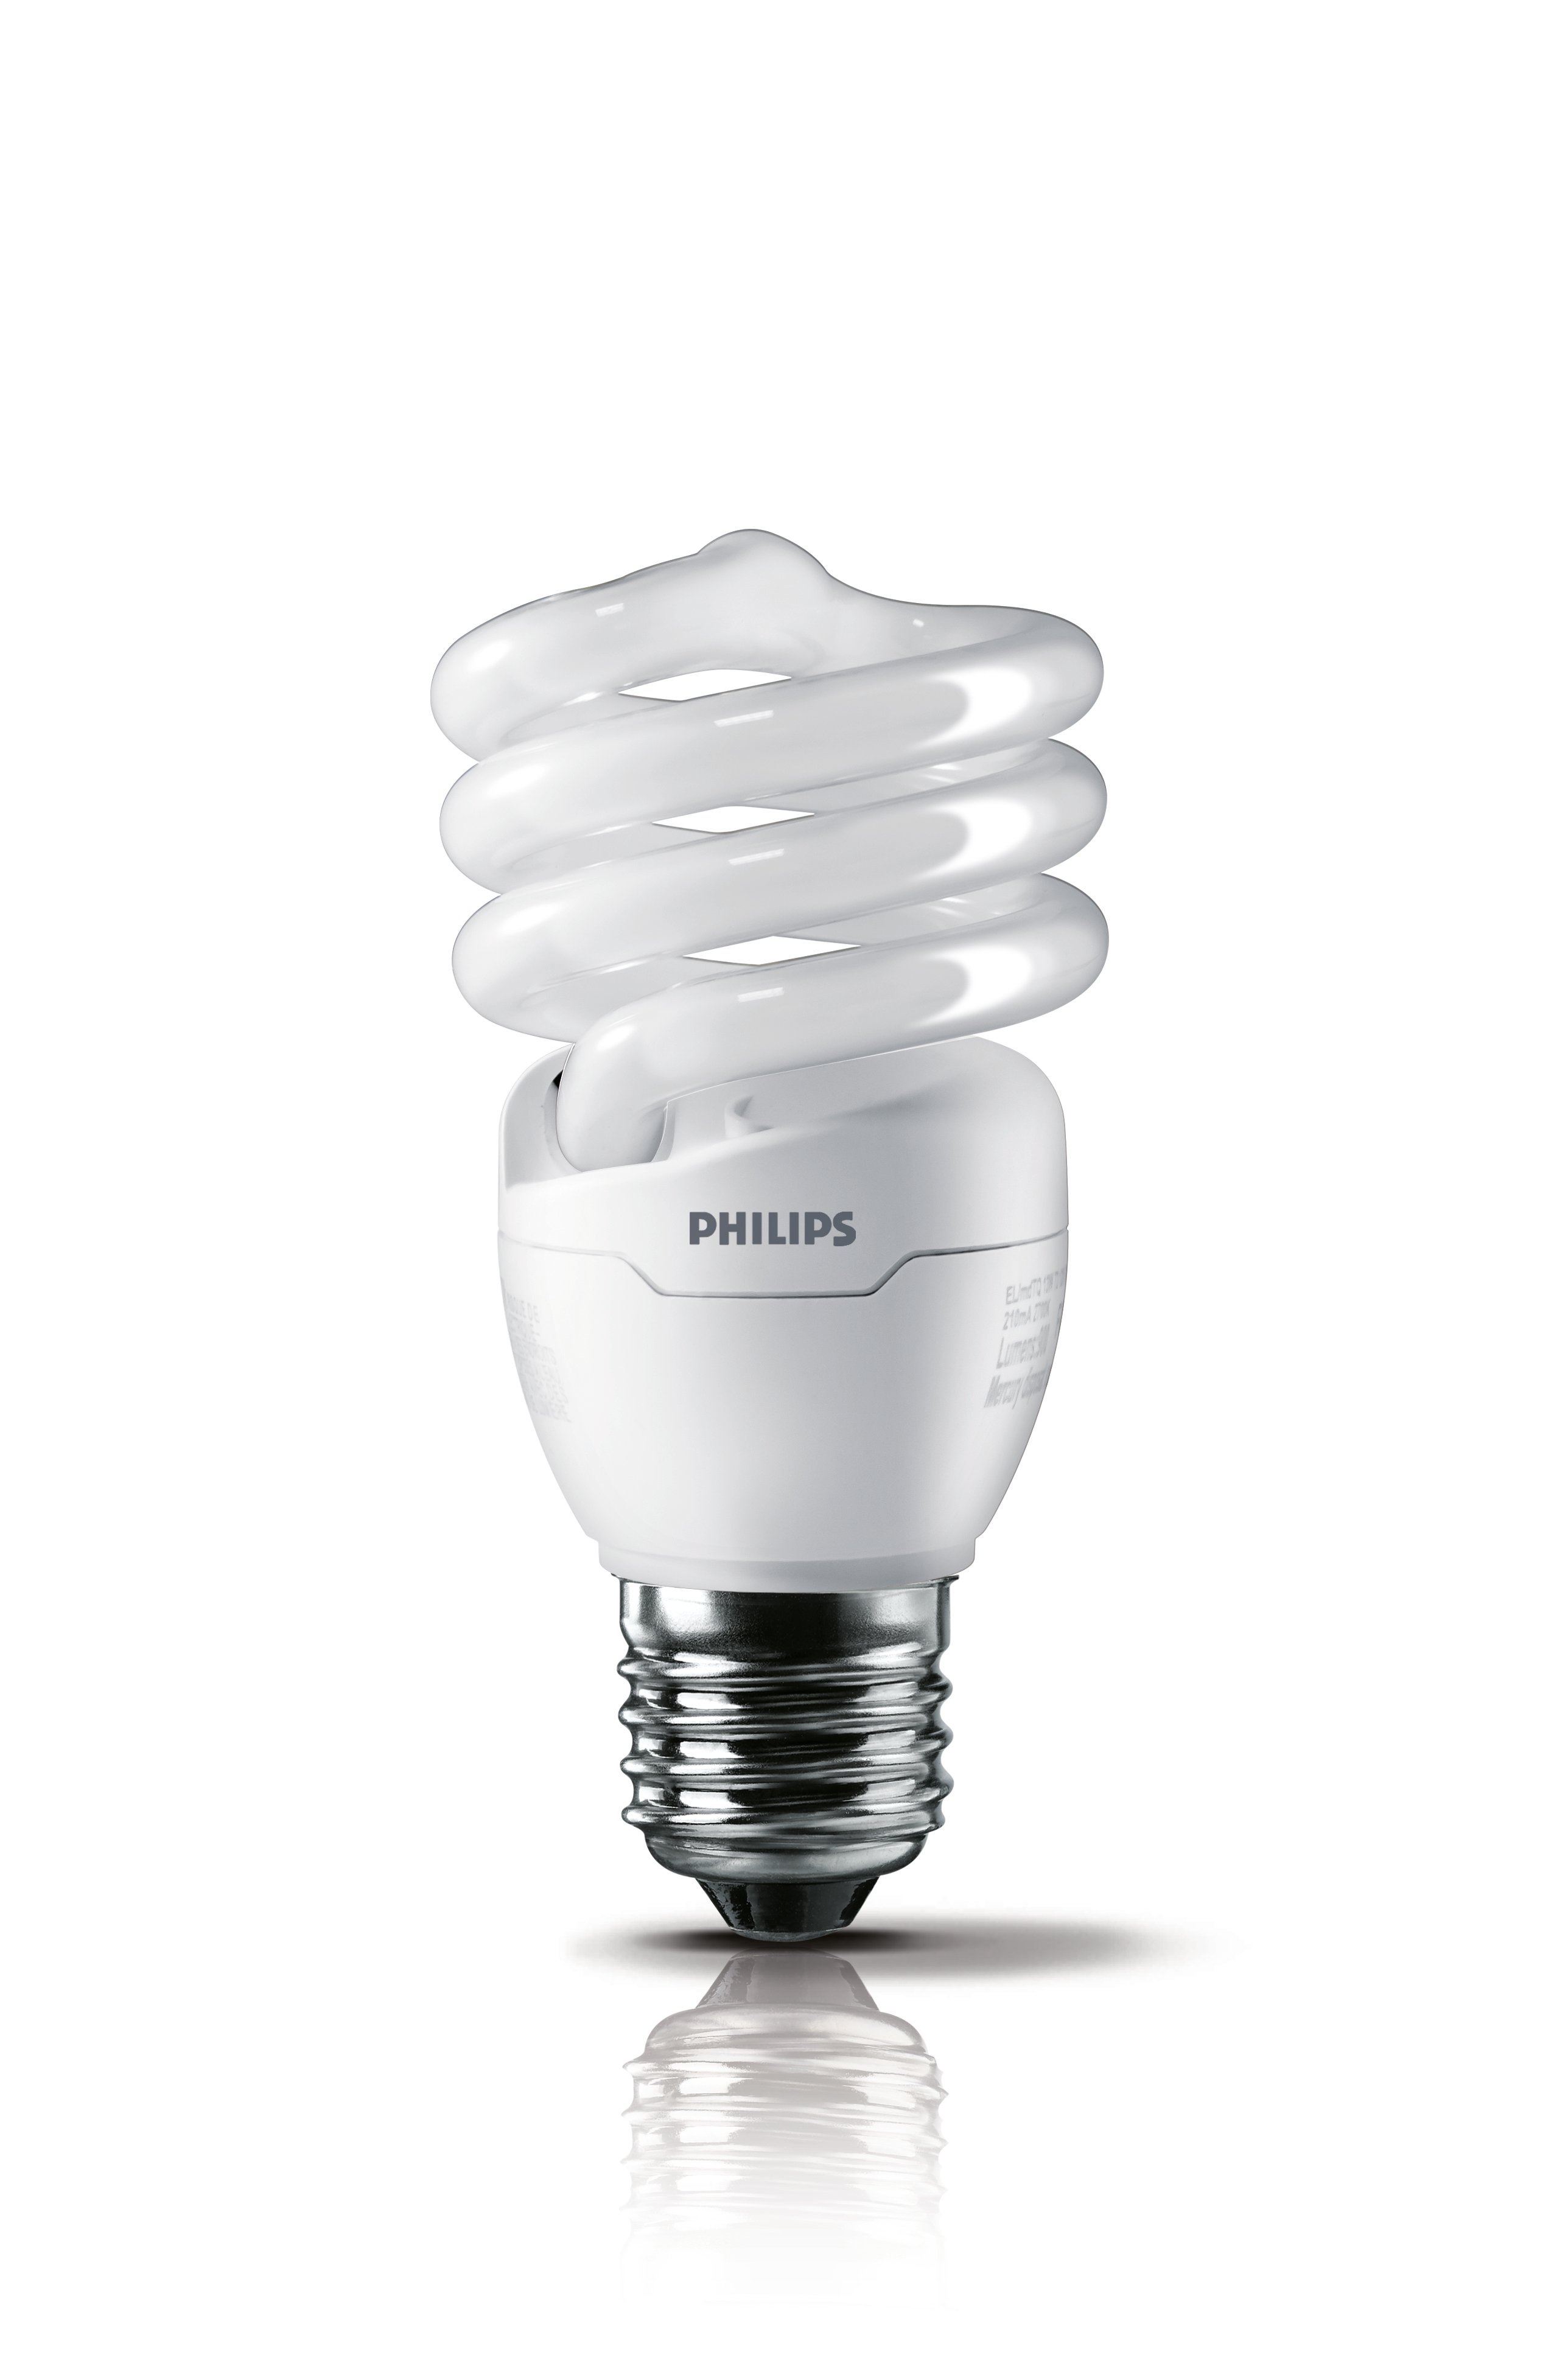 Compact fluorescent lamps use a curved or folded tube to fit into the space typically allotted for incandescent bulbs. While advances in phosphor formulations have improved the perceived color of the light emitted by CFLs and significant energy efficiency has been achieved, the use of hazardous materials to produce the bulbs complicates disposal. Image source: Philips